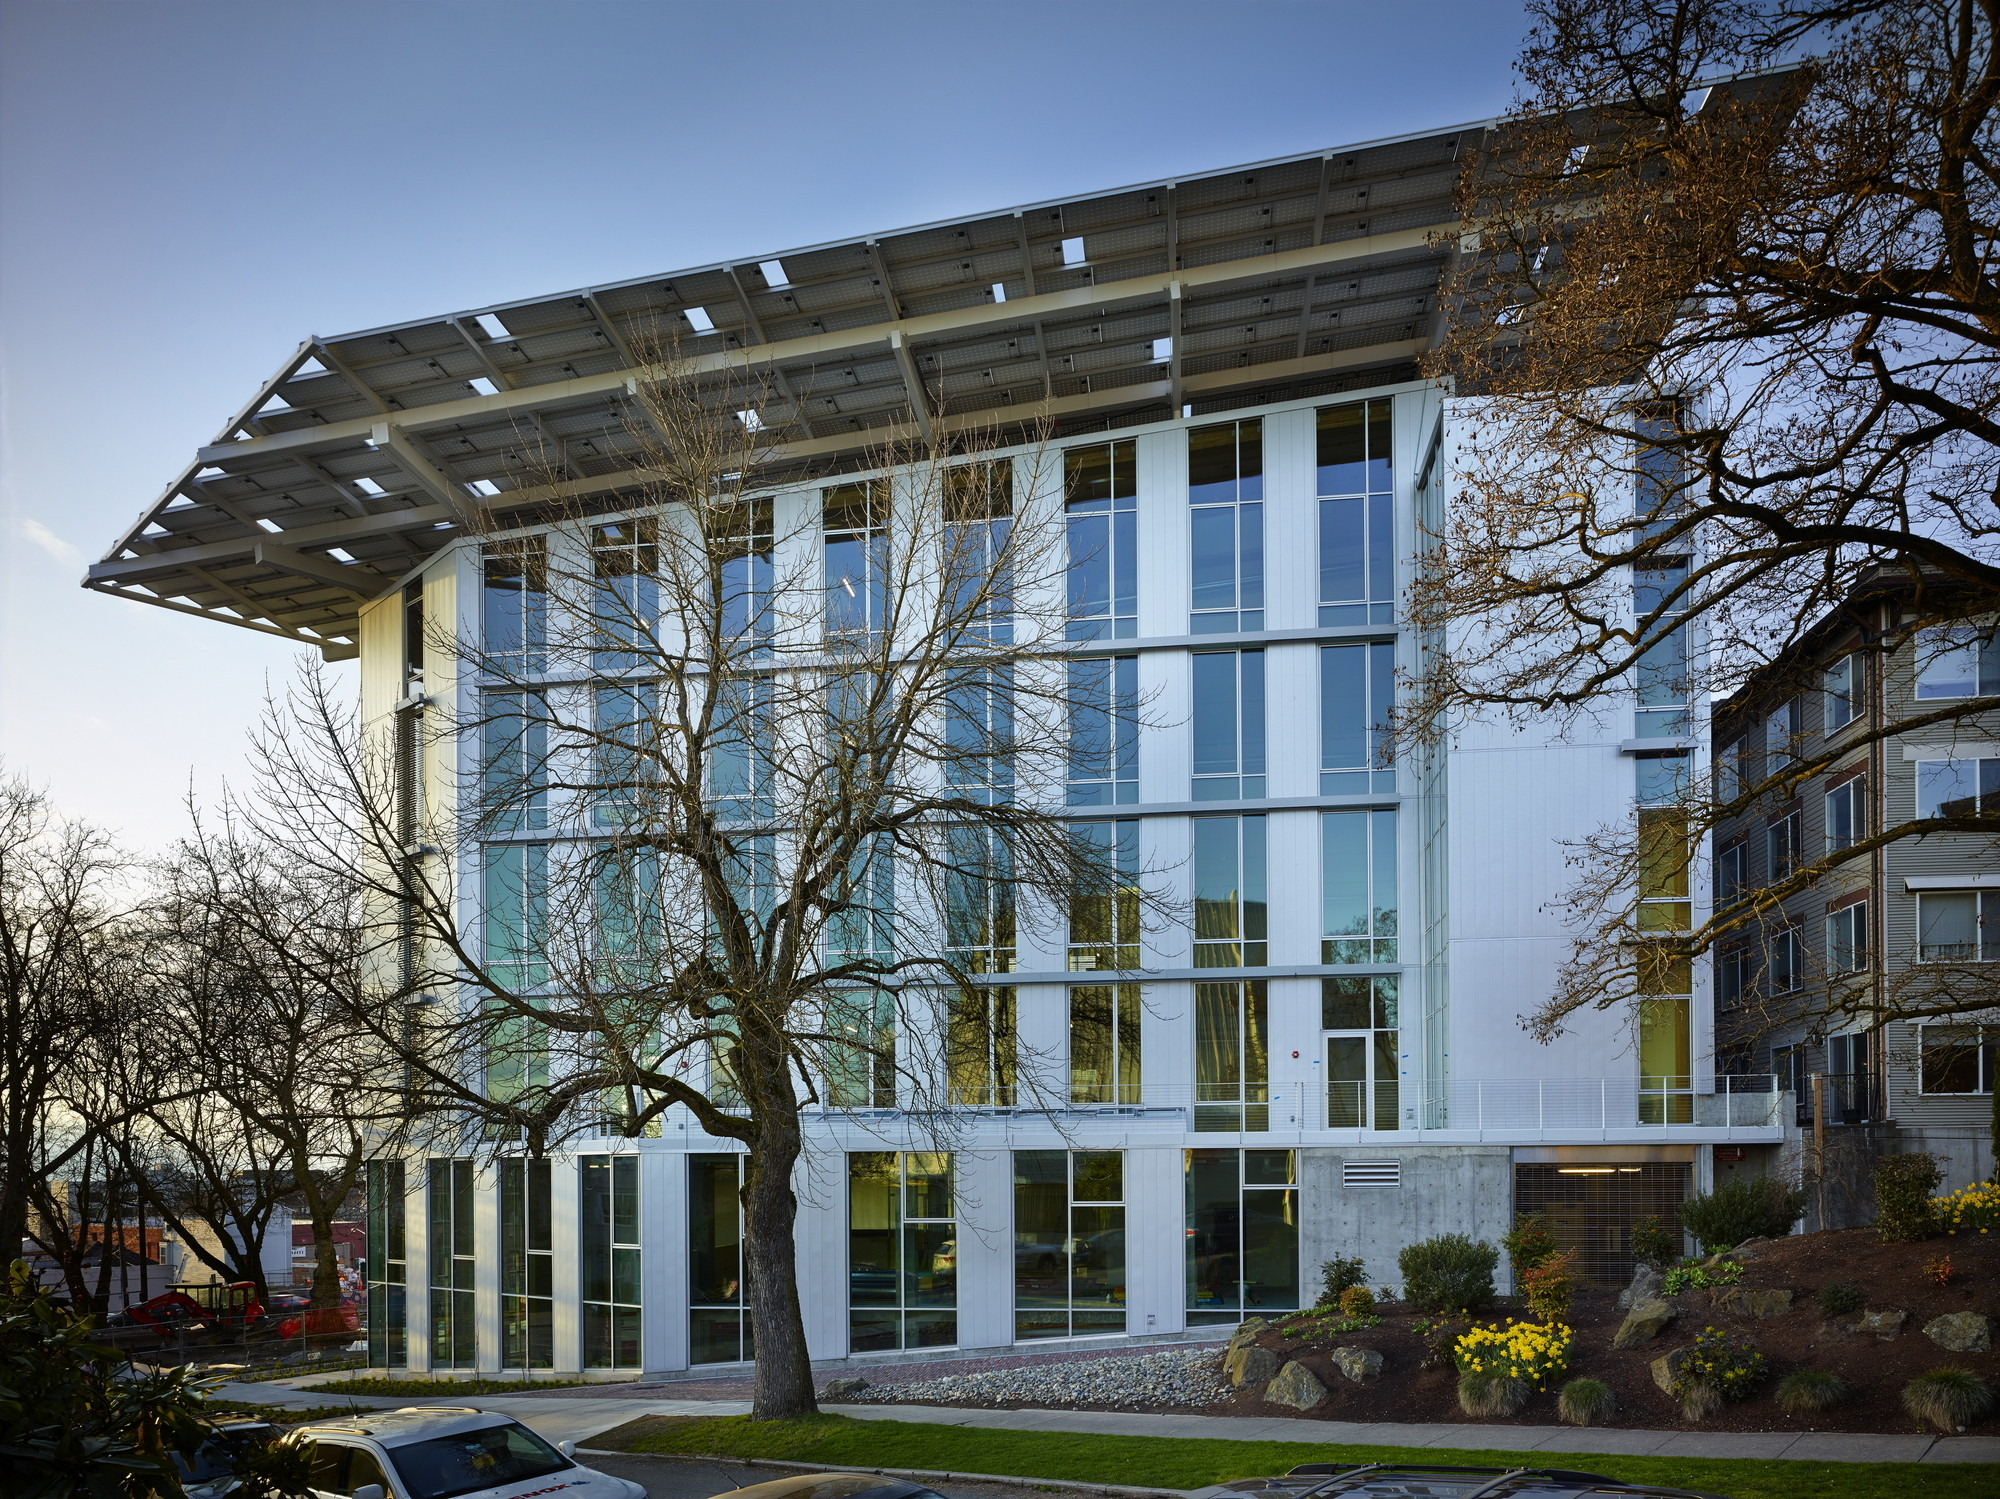 Robert Hull, Co-Founder of the Miller Hull Partnership, Dies at 68, The Bullitt Center, the World's Greenest Commercial Building. Image Courtesy of The Miller Hull Partnership